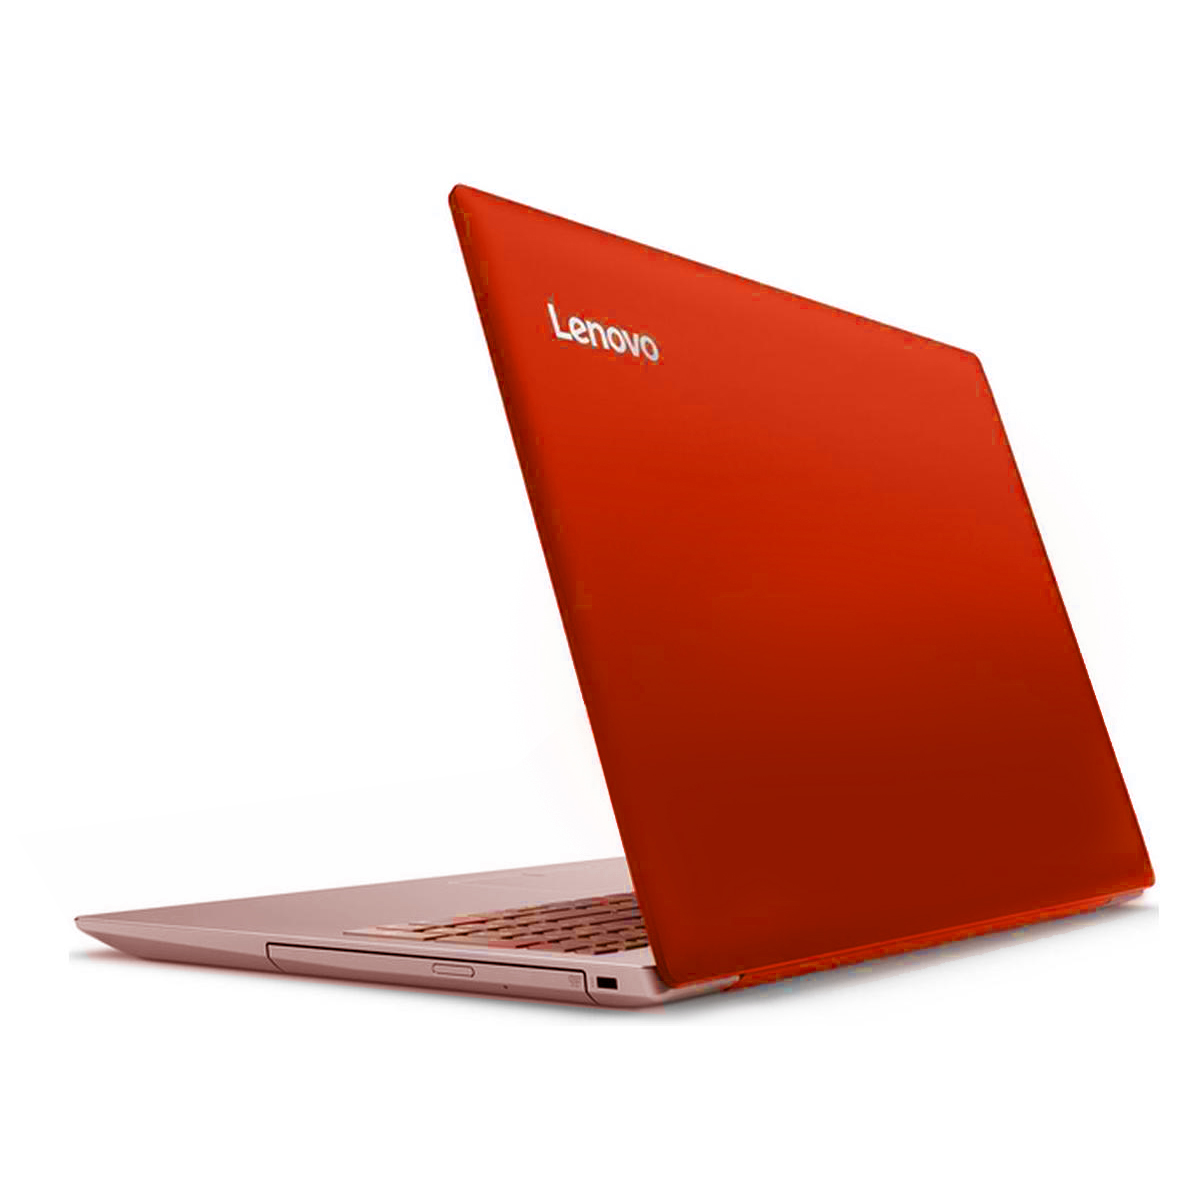 Lenovo Ideapad 330 Intel i3